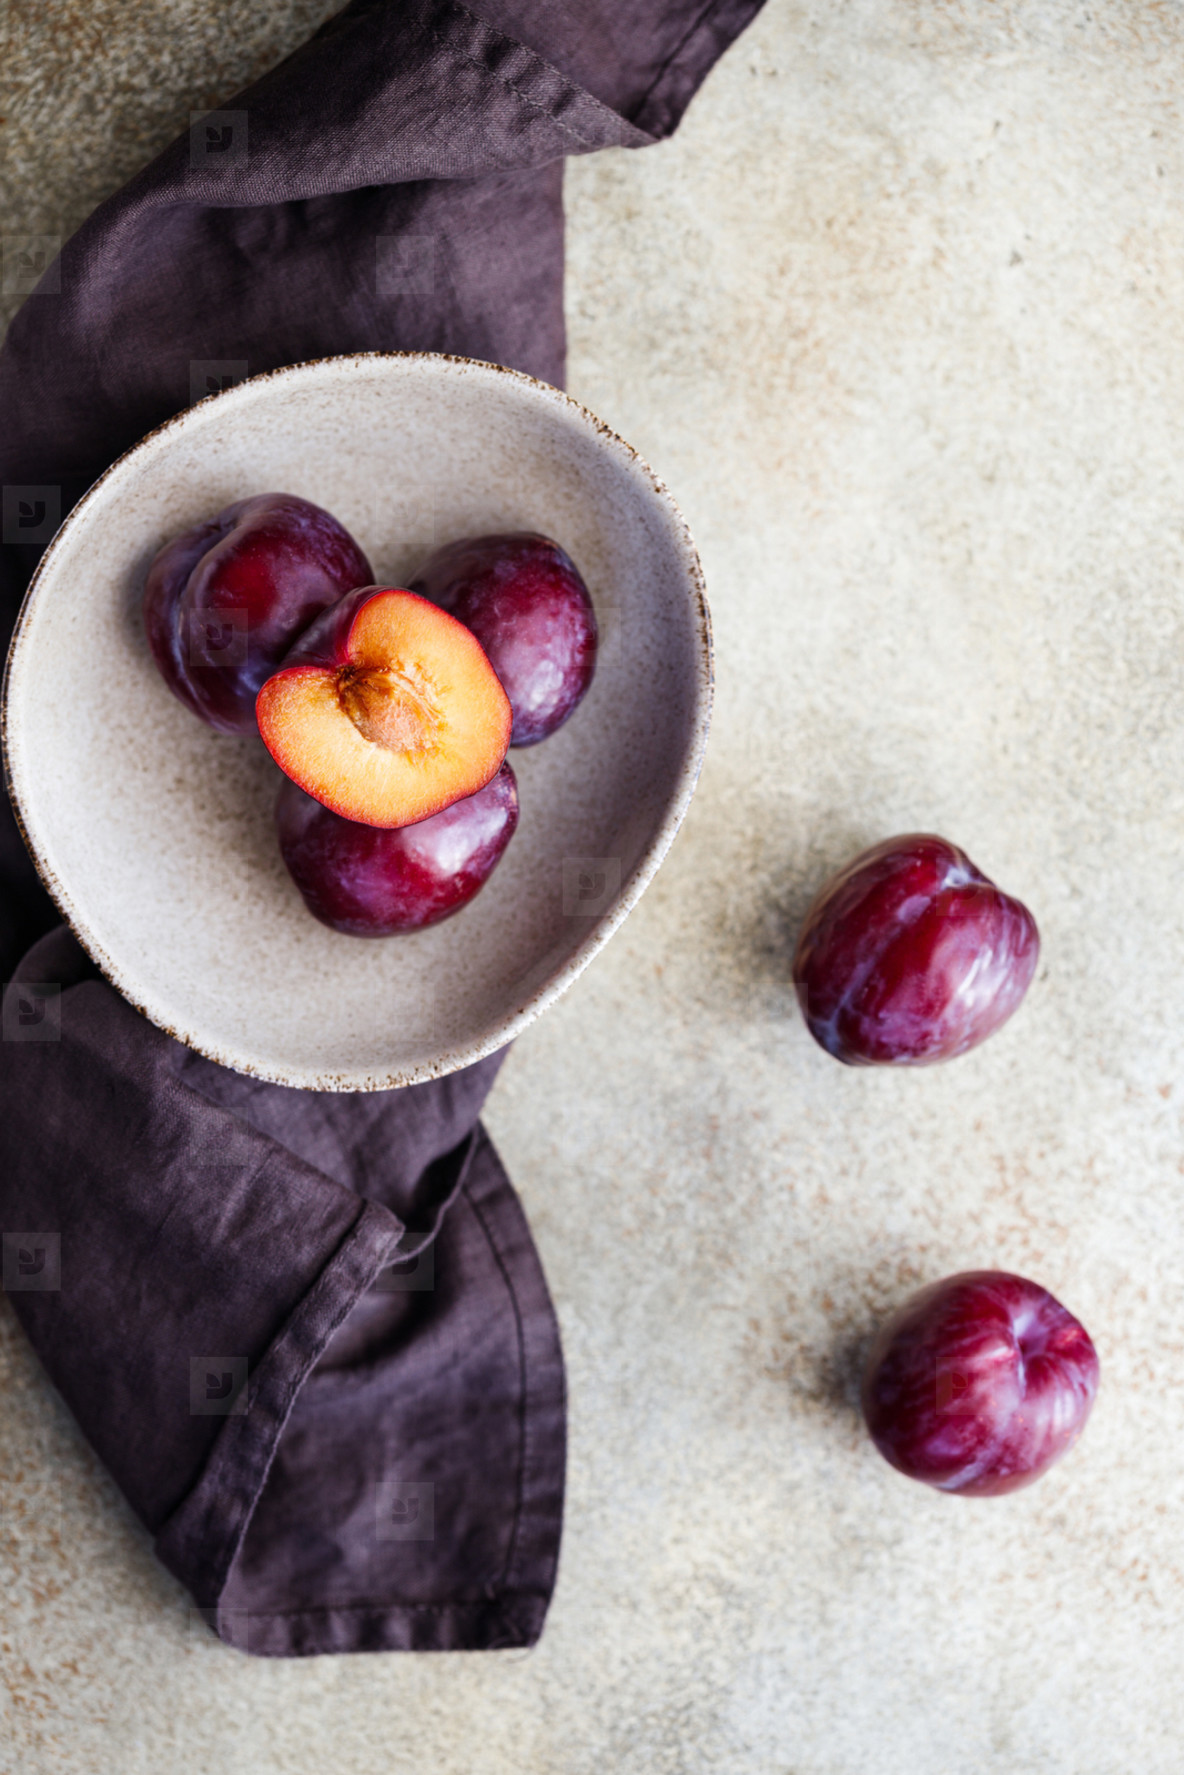 Top view of purple plum in a ceramic bowl on a beige textured background